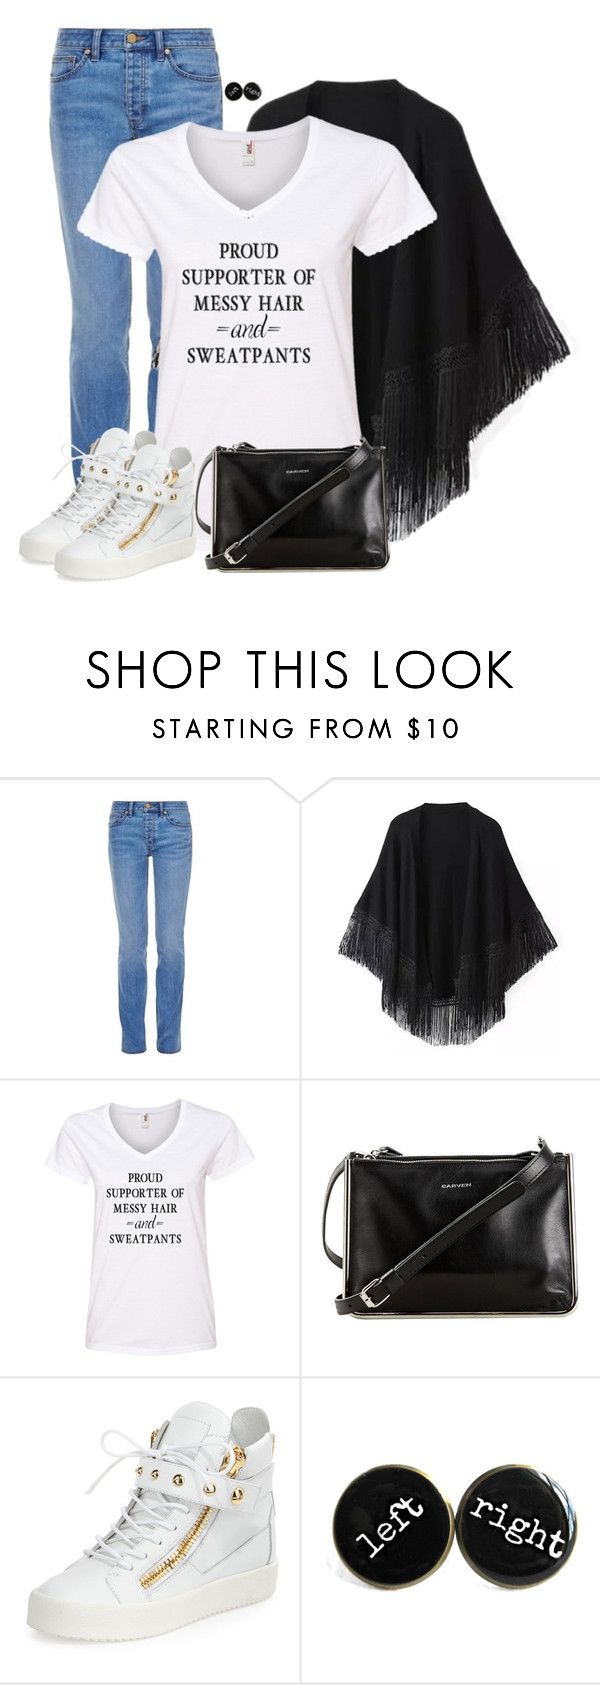 """Shawl"" by cnh92 ❤ liked on Polyvore featuring Tory Burch, Carven and Giuseppe Zanotti"